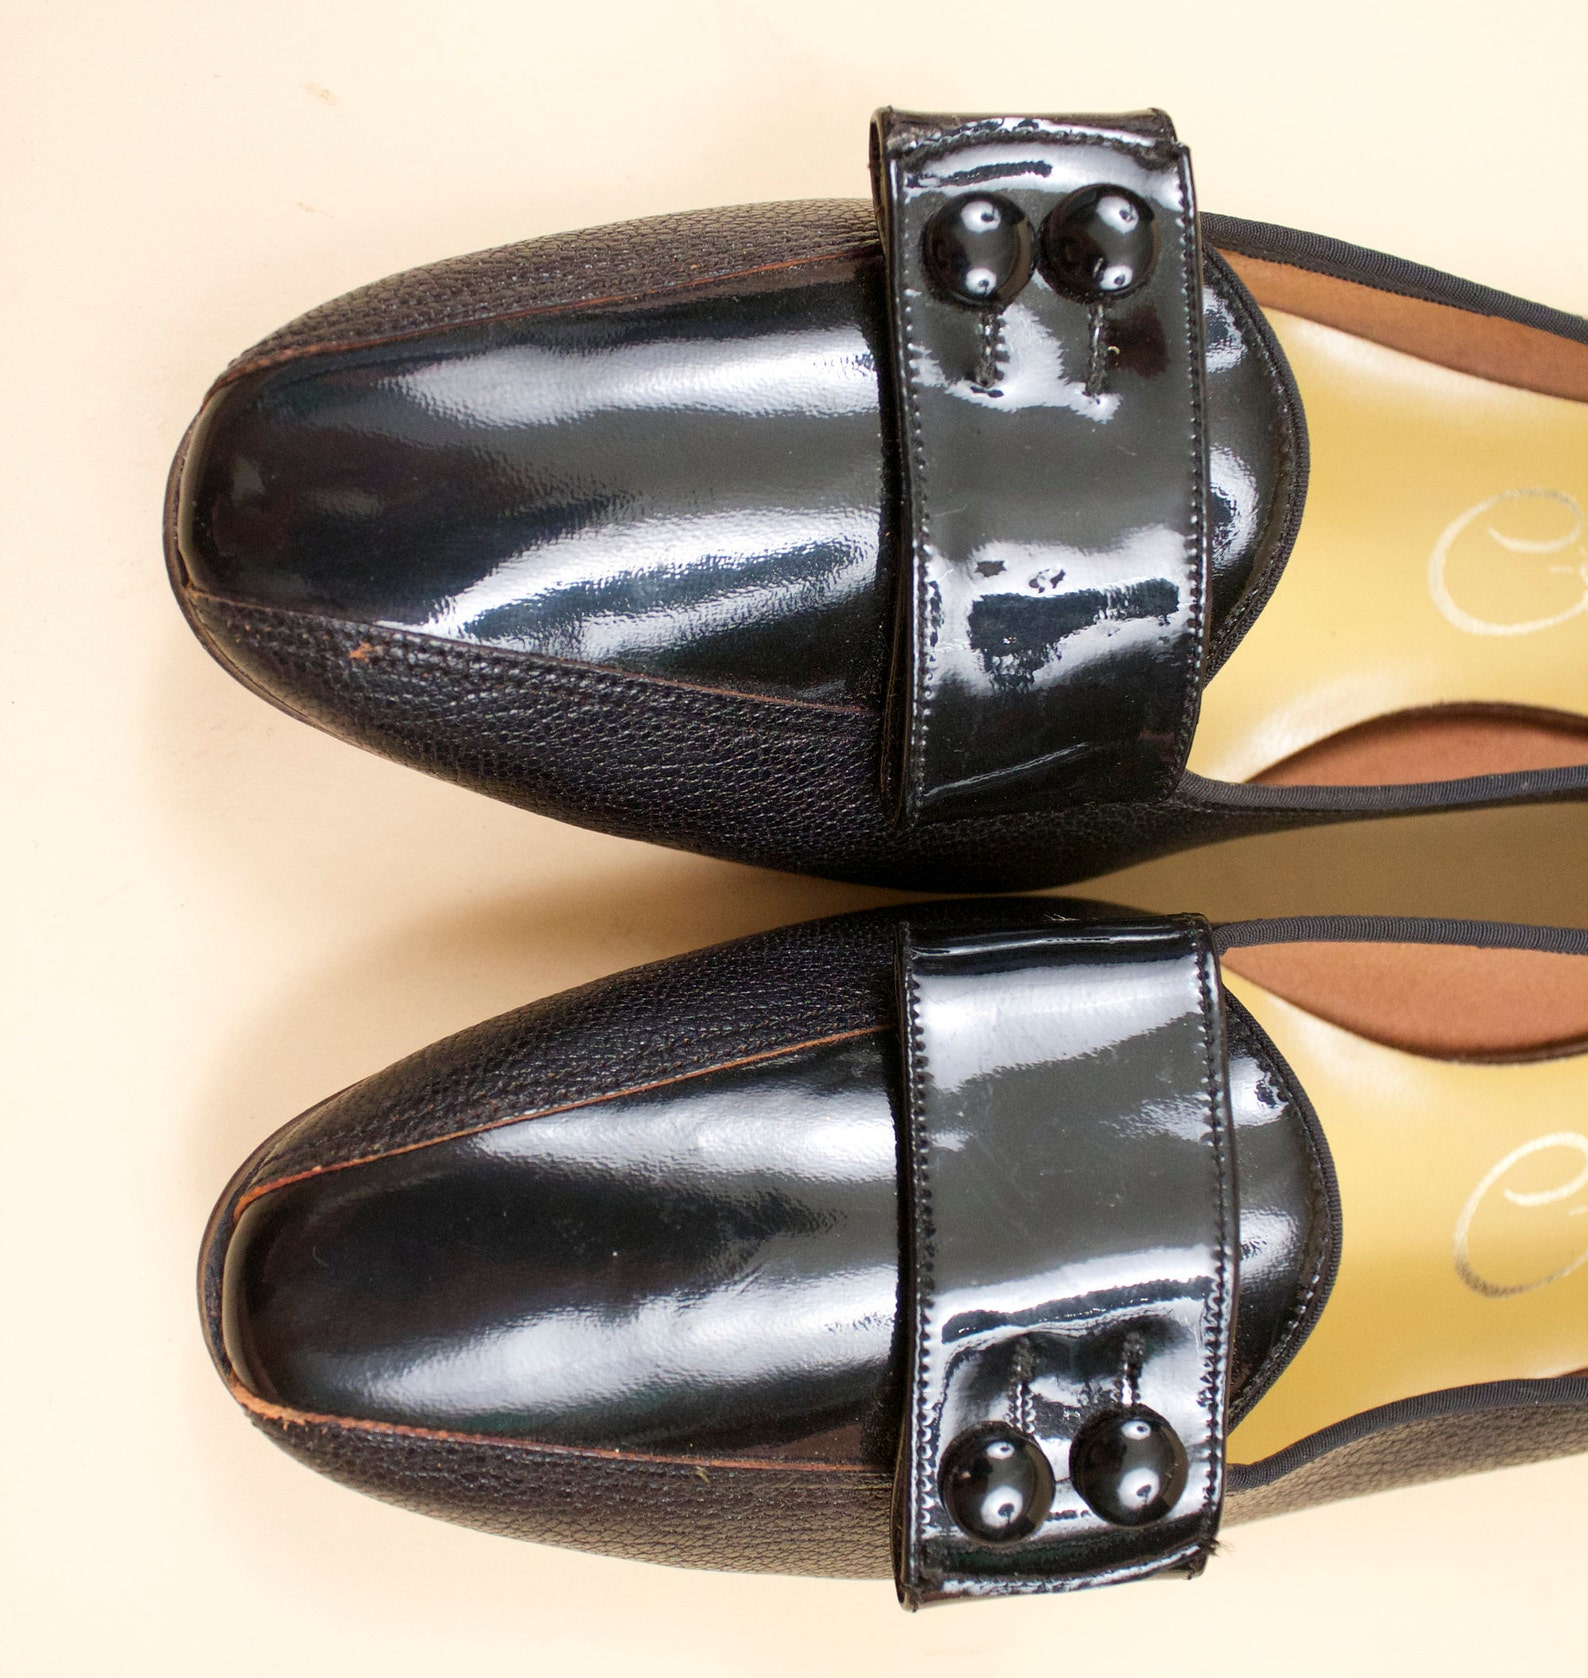 60s vtg deadstock leather & jet black vinyl pointed slip on low heel ballet slipper flats / mod gogo patent bow nwob 11.5 11 eu